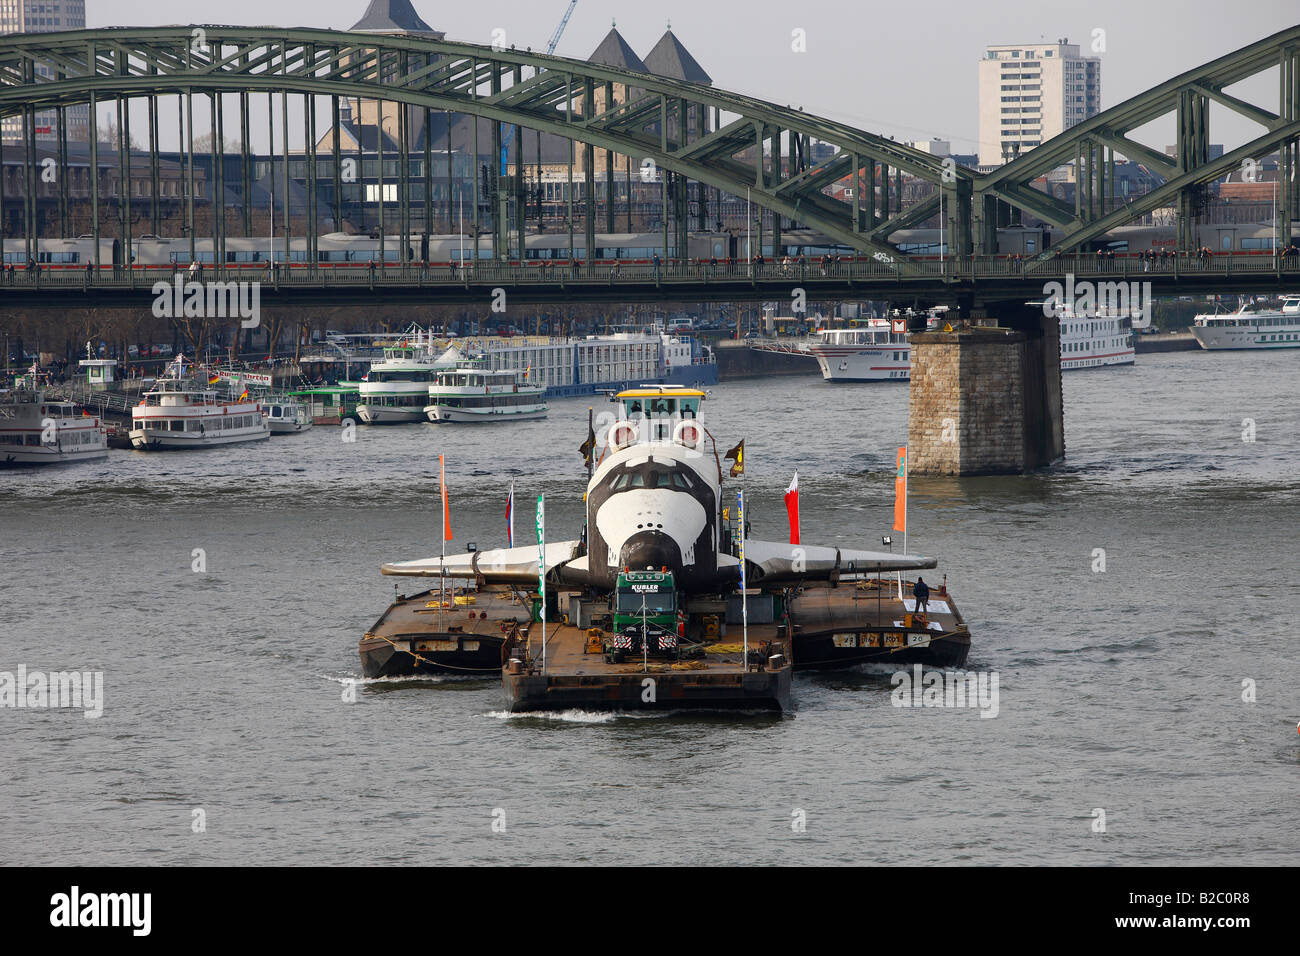 russian space ship - photo #25